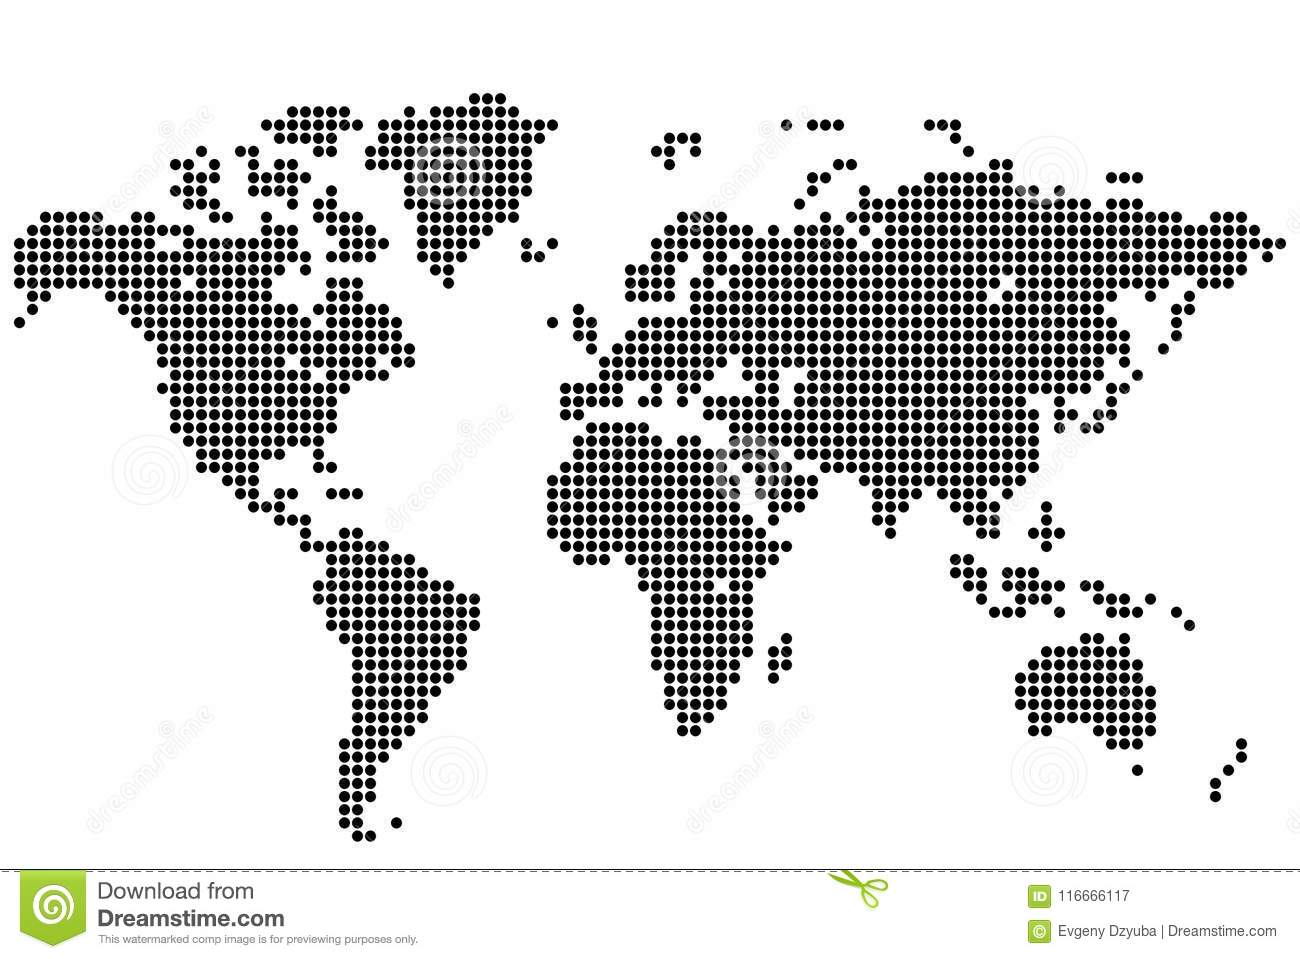 World map of round dots stock vector. Illustration of dotted ...